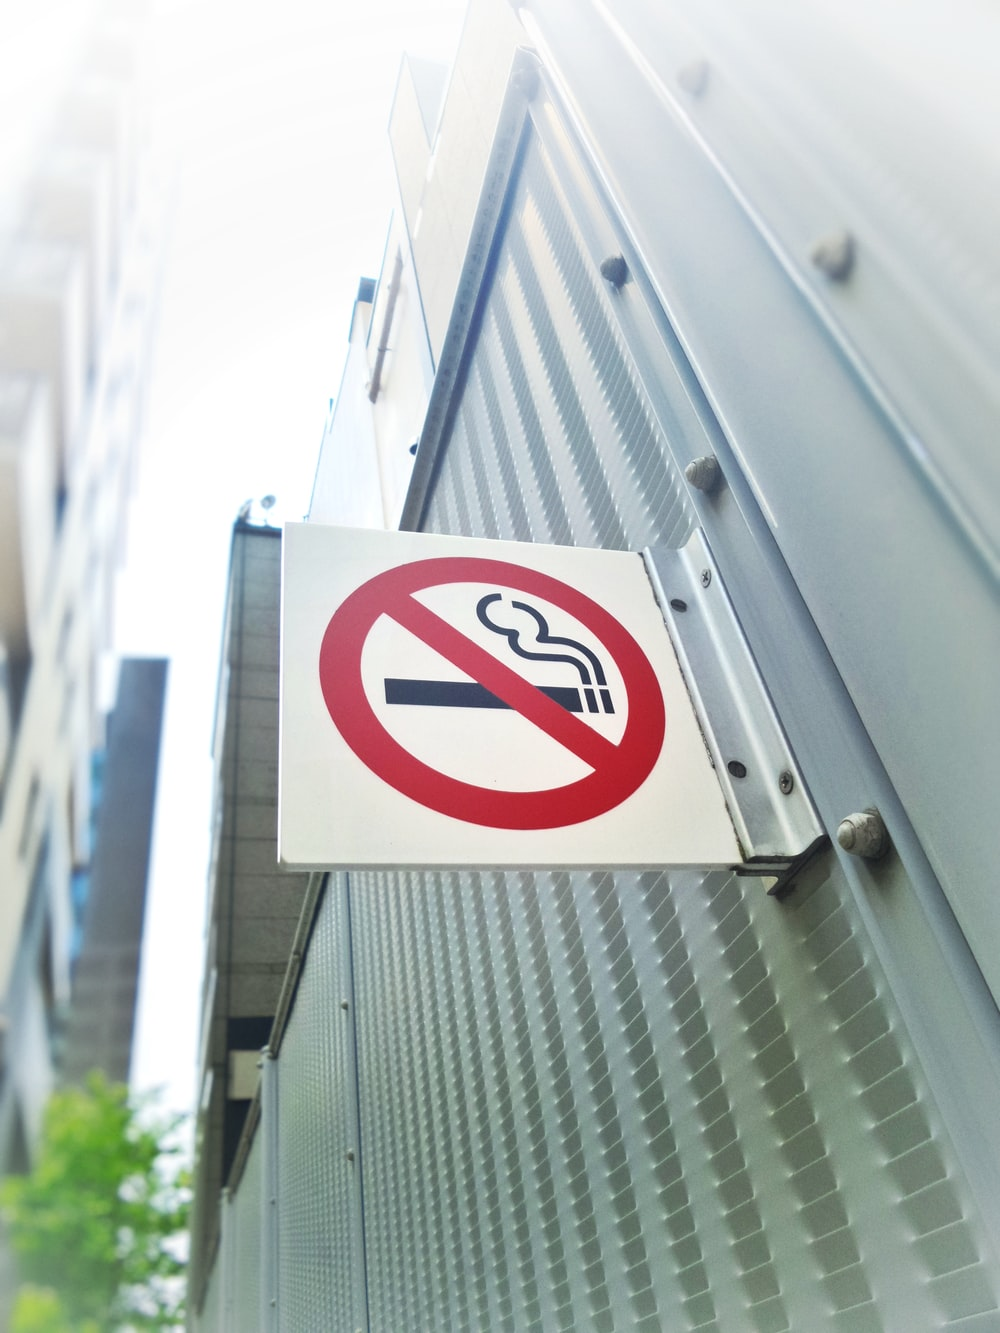 non smoking sign at heavy duty generator system